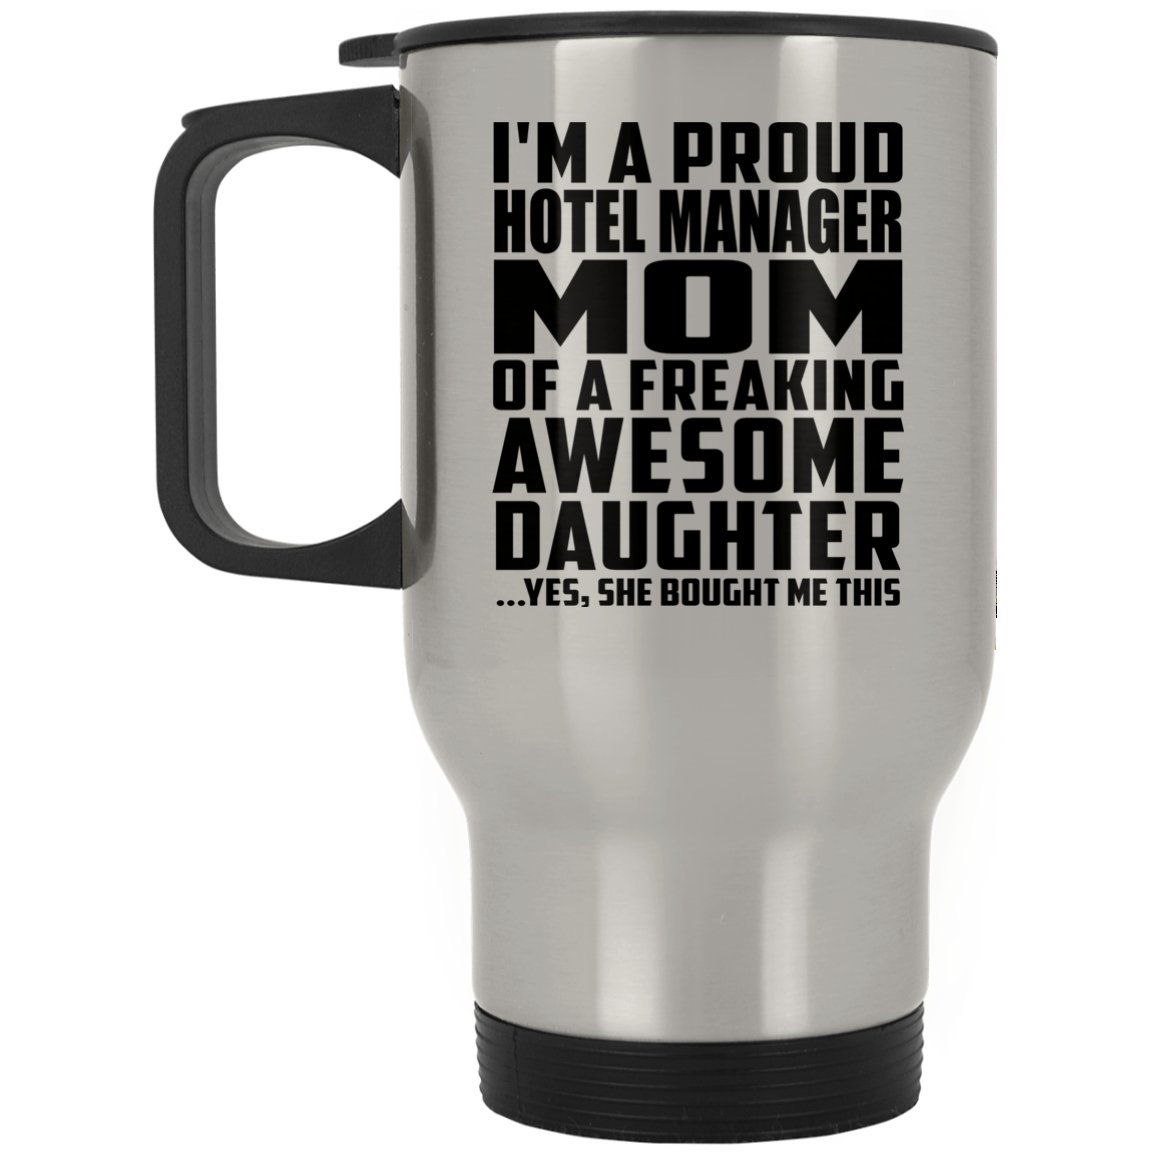 Mom Travel Mug, I'm A Proud Hotel Manager Mom Of A Freaking Awesome Daughter, She Bought Me This - Travel Mug, Stainless Steel Tumbler, Best Gift for Mother Mom from Daughter Kid